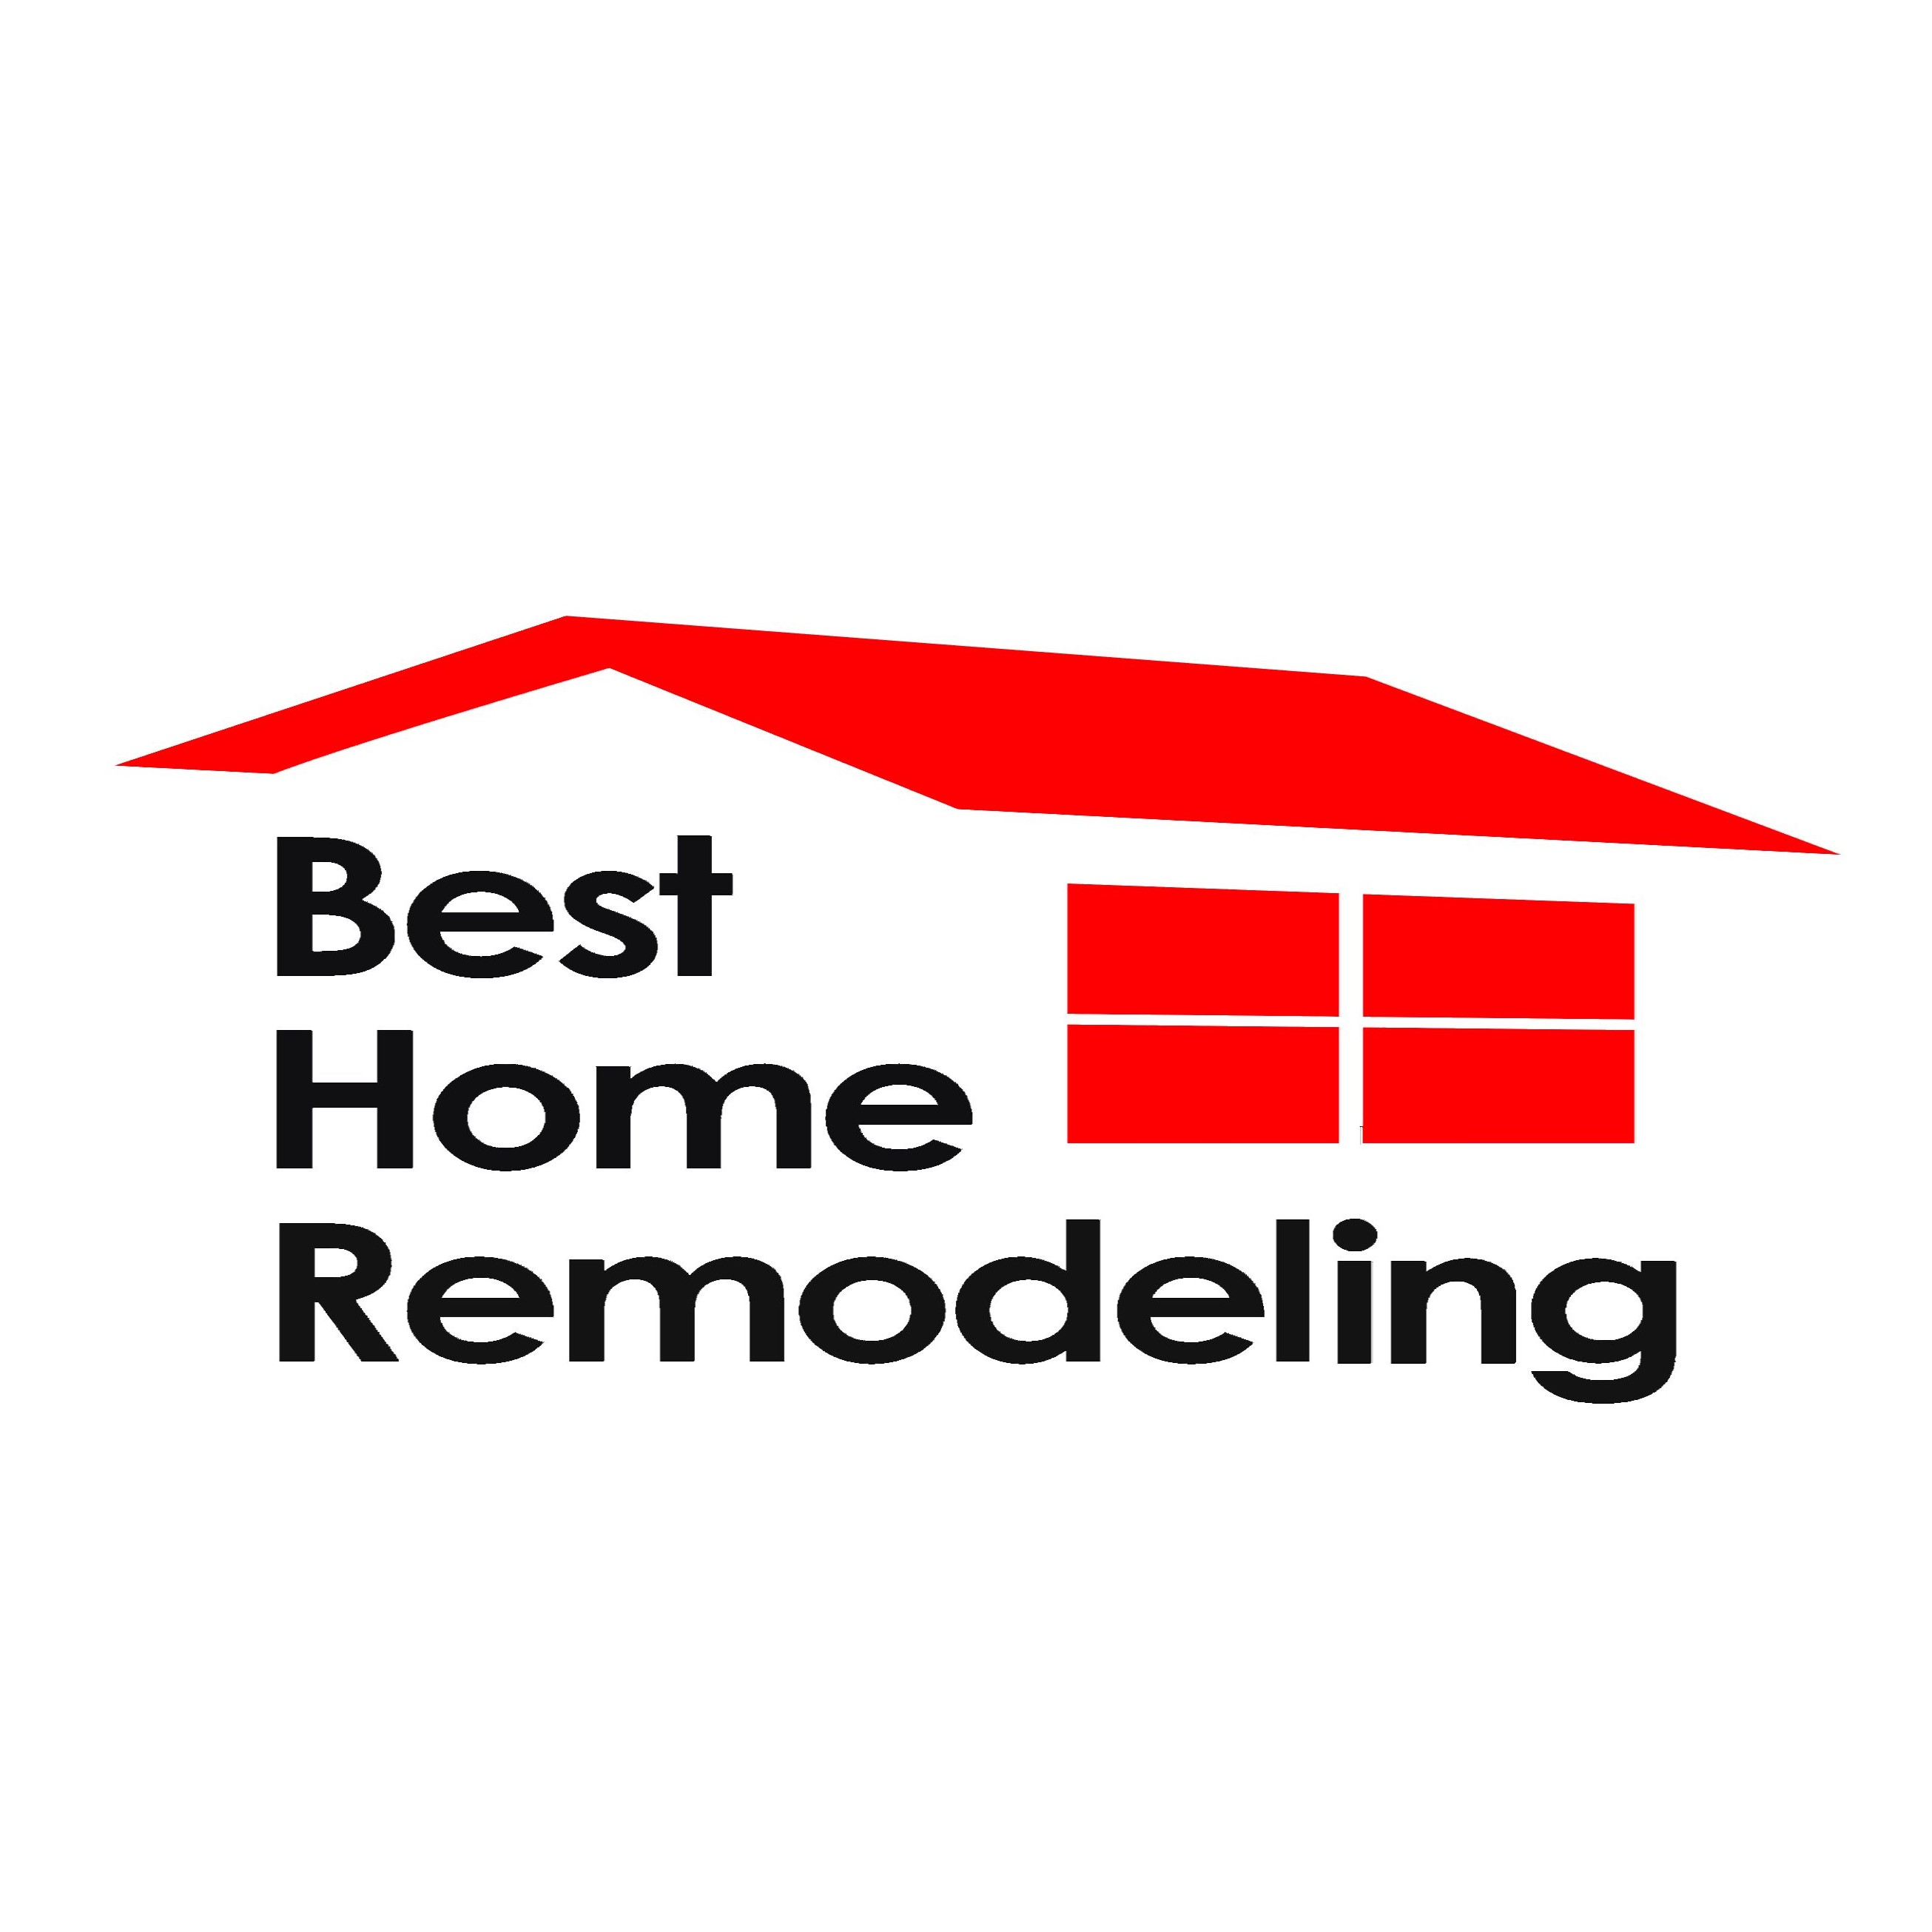 Best Home Remodeling